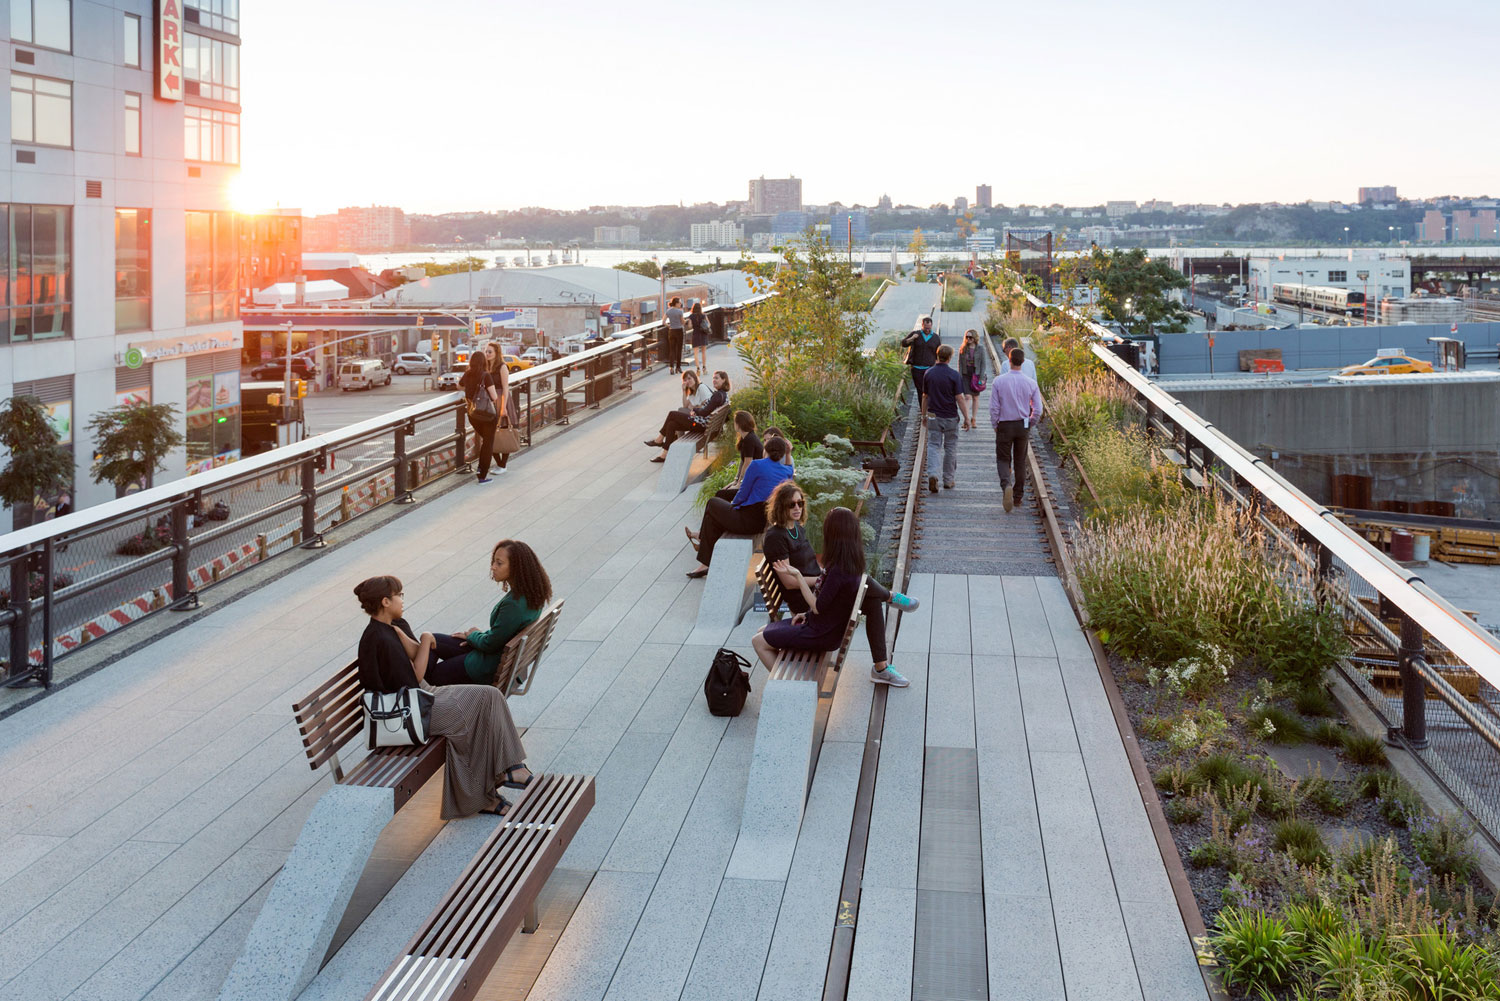 The High Line walkway, New York City.